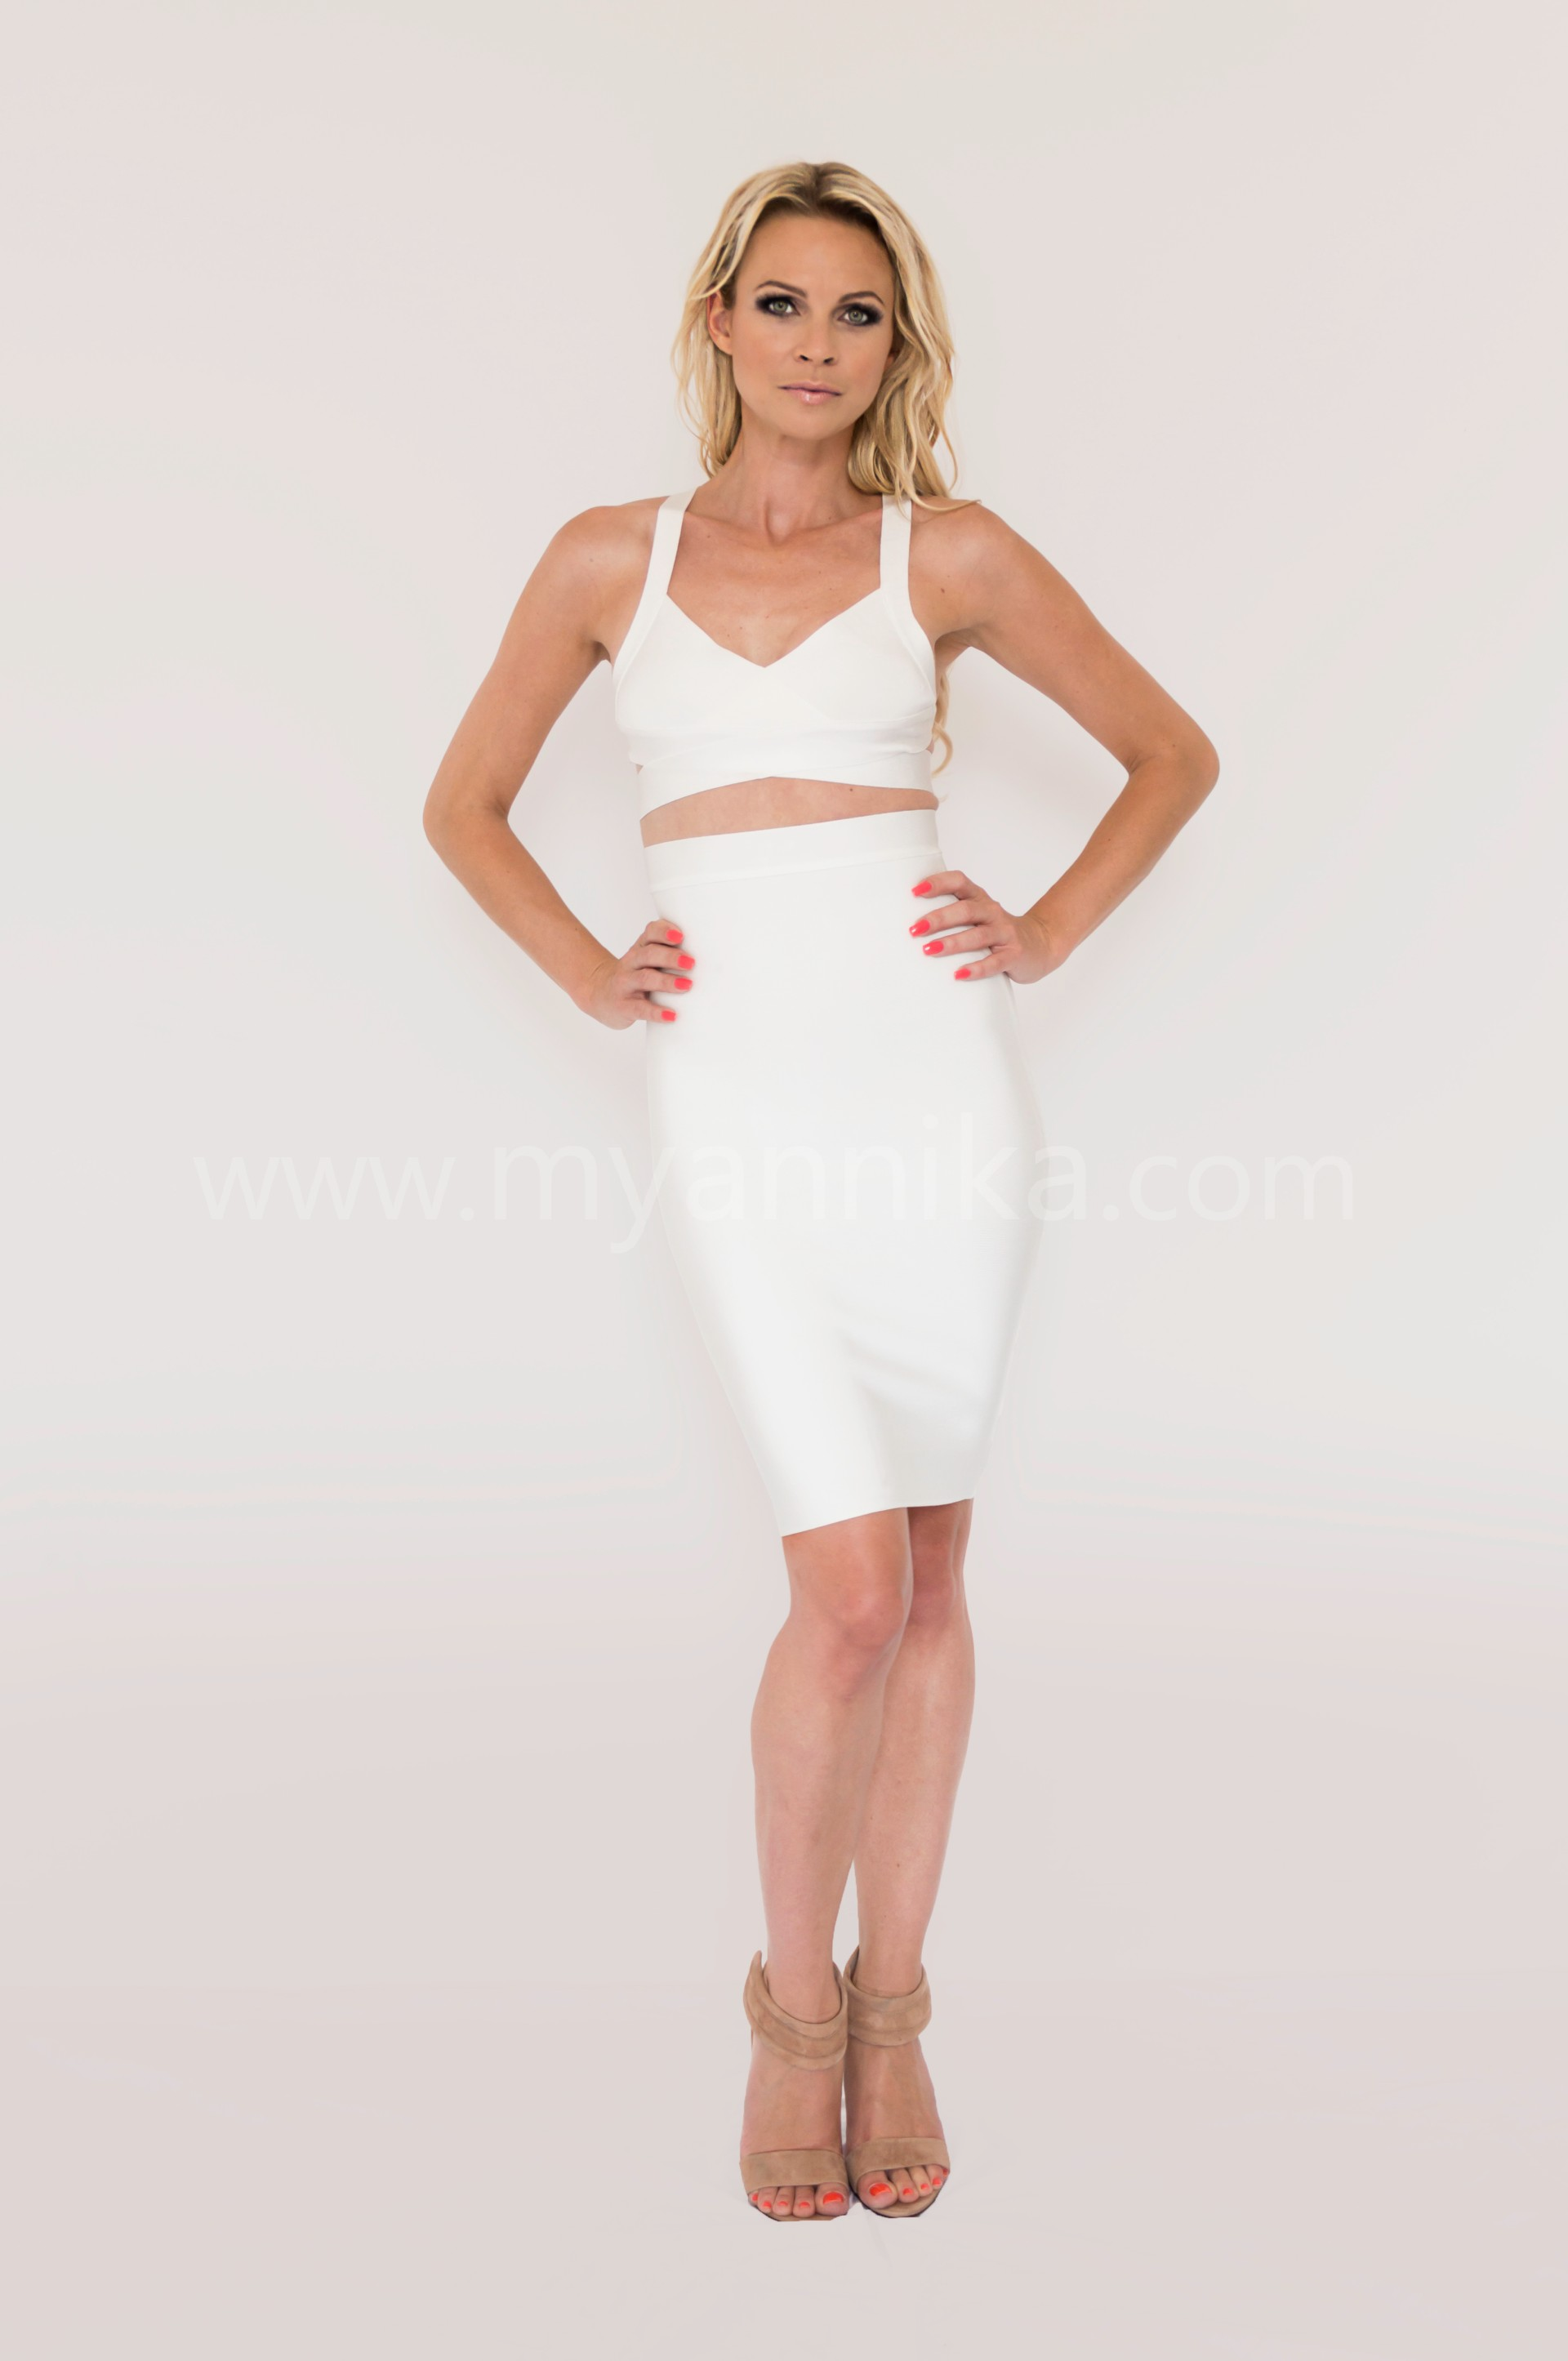 Malibu - White 2 Piece Celebrity Style Bandage Dress Combo with Pencil Skirt and Crop Top Annika - Bandage Dresses | Celebrity Party Dresses | Herve Leger Dresses Dress detail